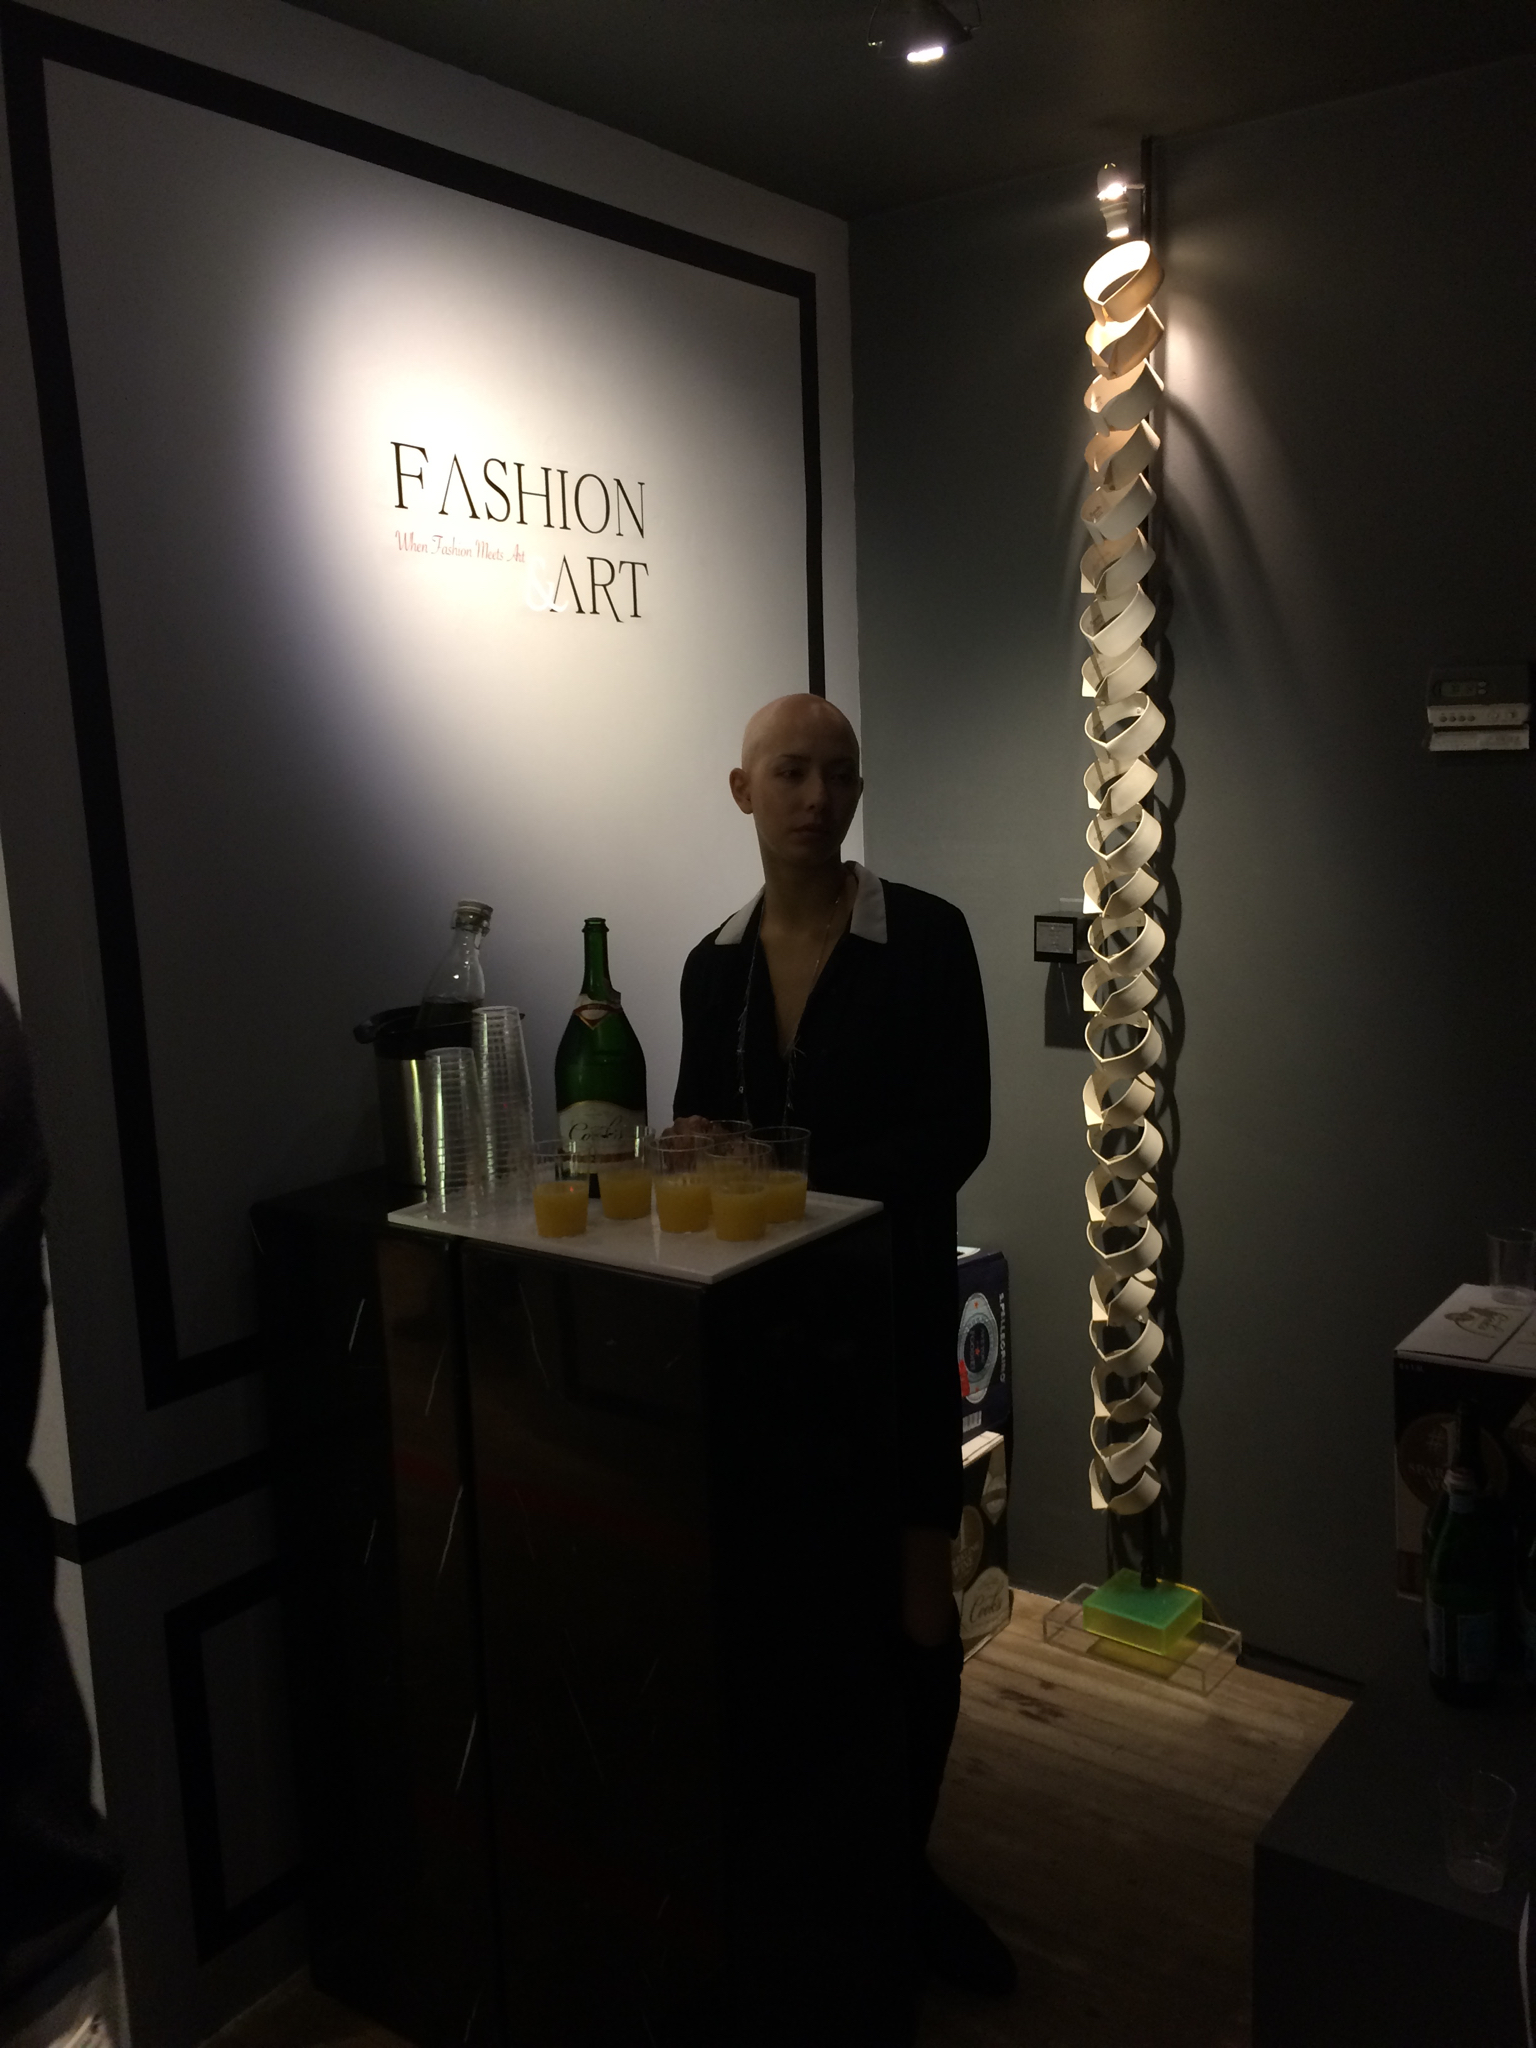 When Fashion Meets Art Exhibition at Artemisia Gallery - a